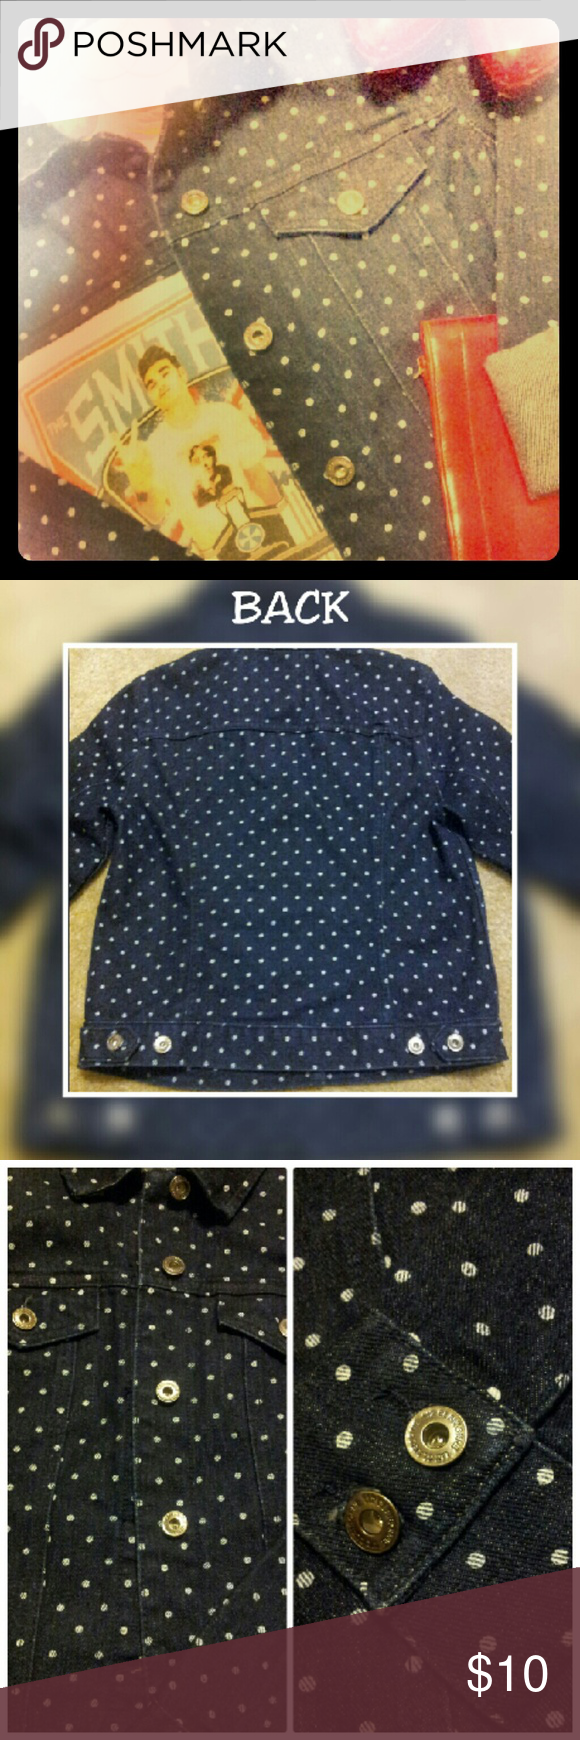 Liz Claiborne Jean Jacket w/ Polka Dots Dark blue with small white polka dots. Silver buttons. Only worn once. Just like new condition!!! Liz Claiborne. Liz Claiborne Jackets & Coats Jean Jackets